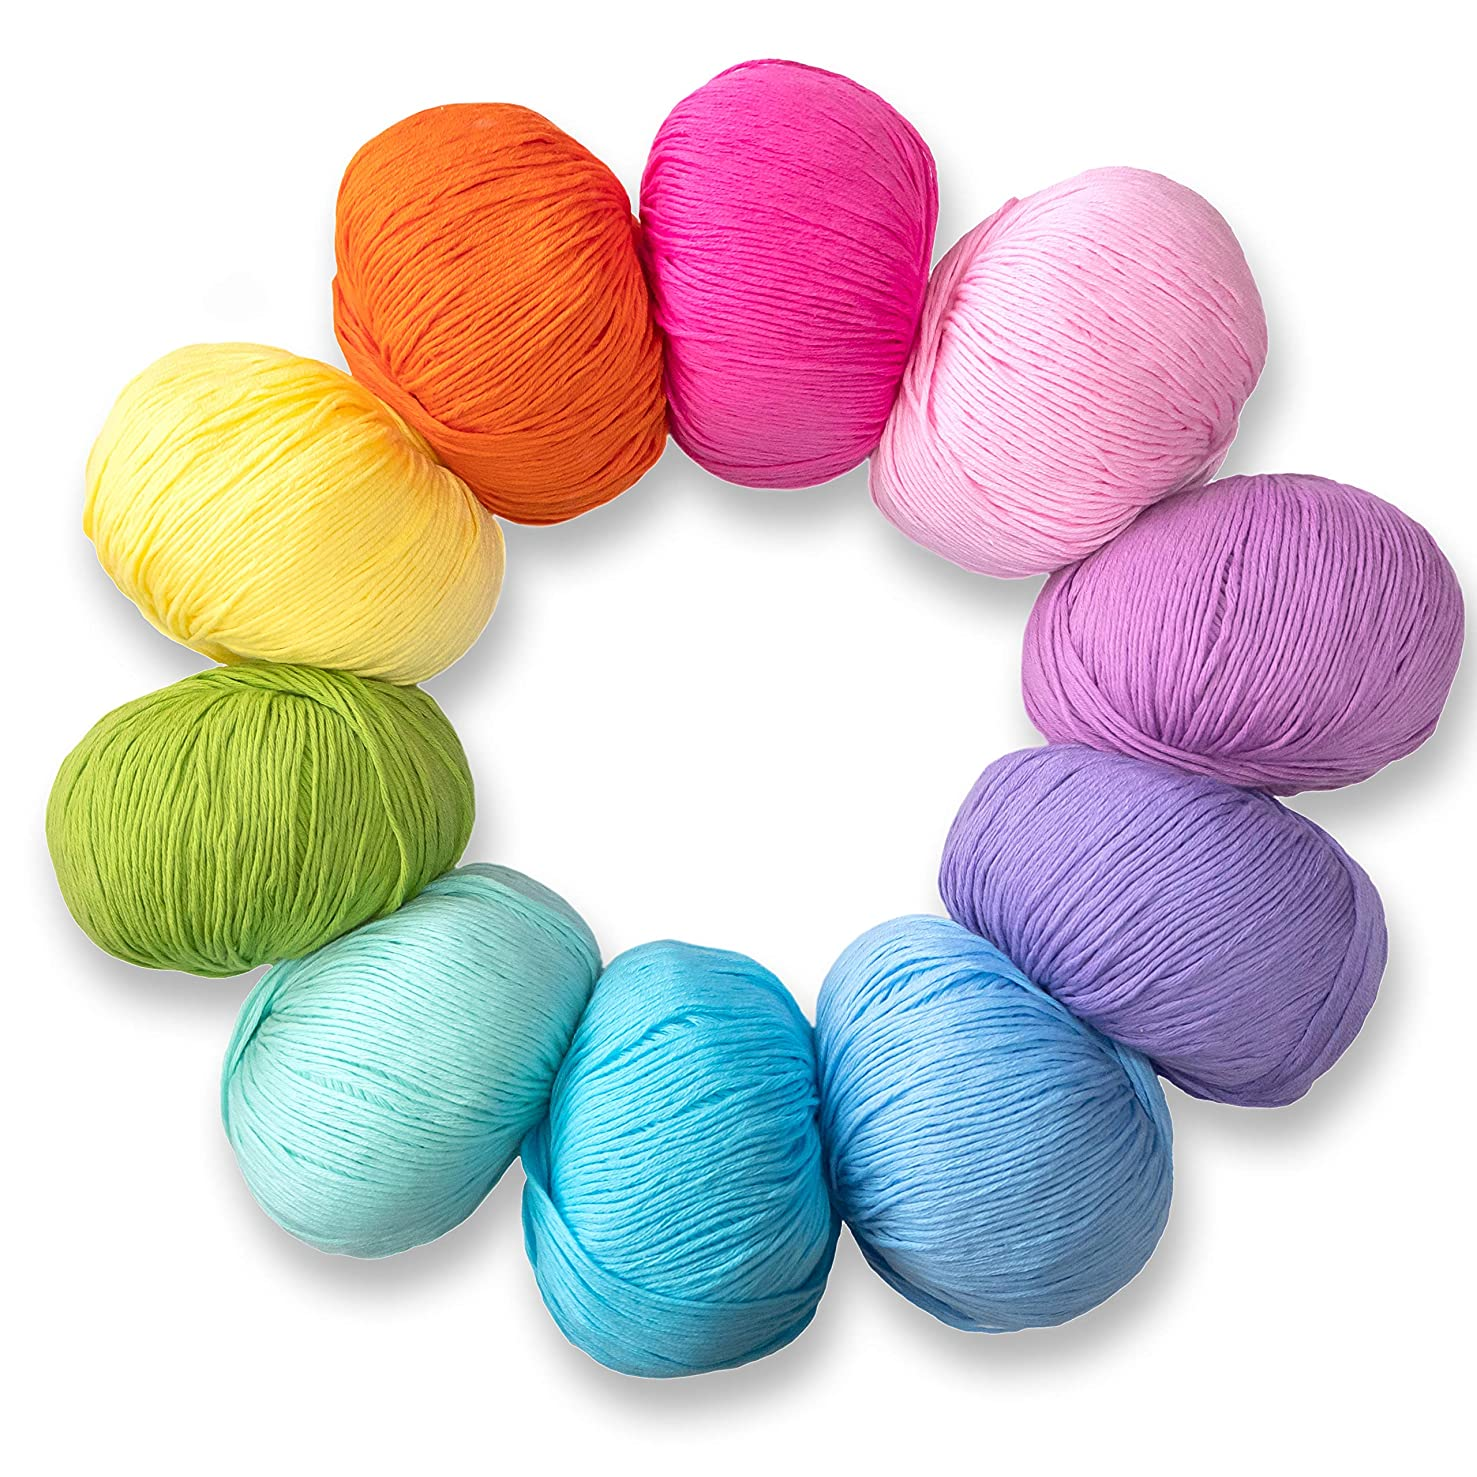 Studio SAM Cotton Yarn for Knitting and Crochet. 100% Soft Cotton in a Set of 10 Vibrant Colors. Bulk Bundle, Great Starter kit for Crafts, dishcloths or Baby Blanket. (Boho Brights Collection)